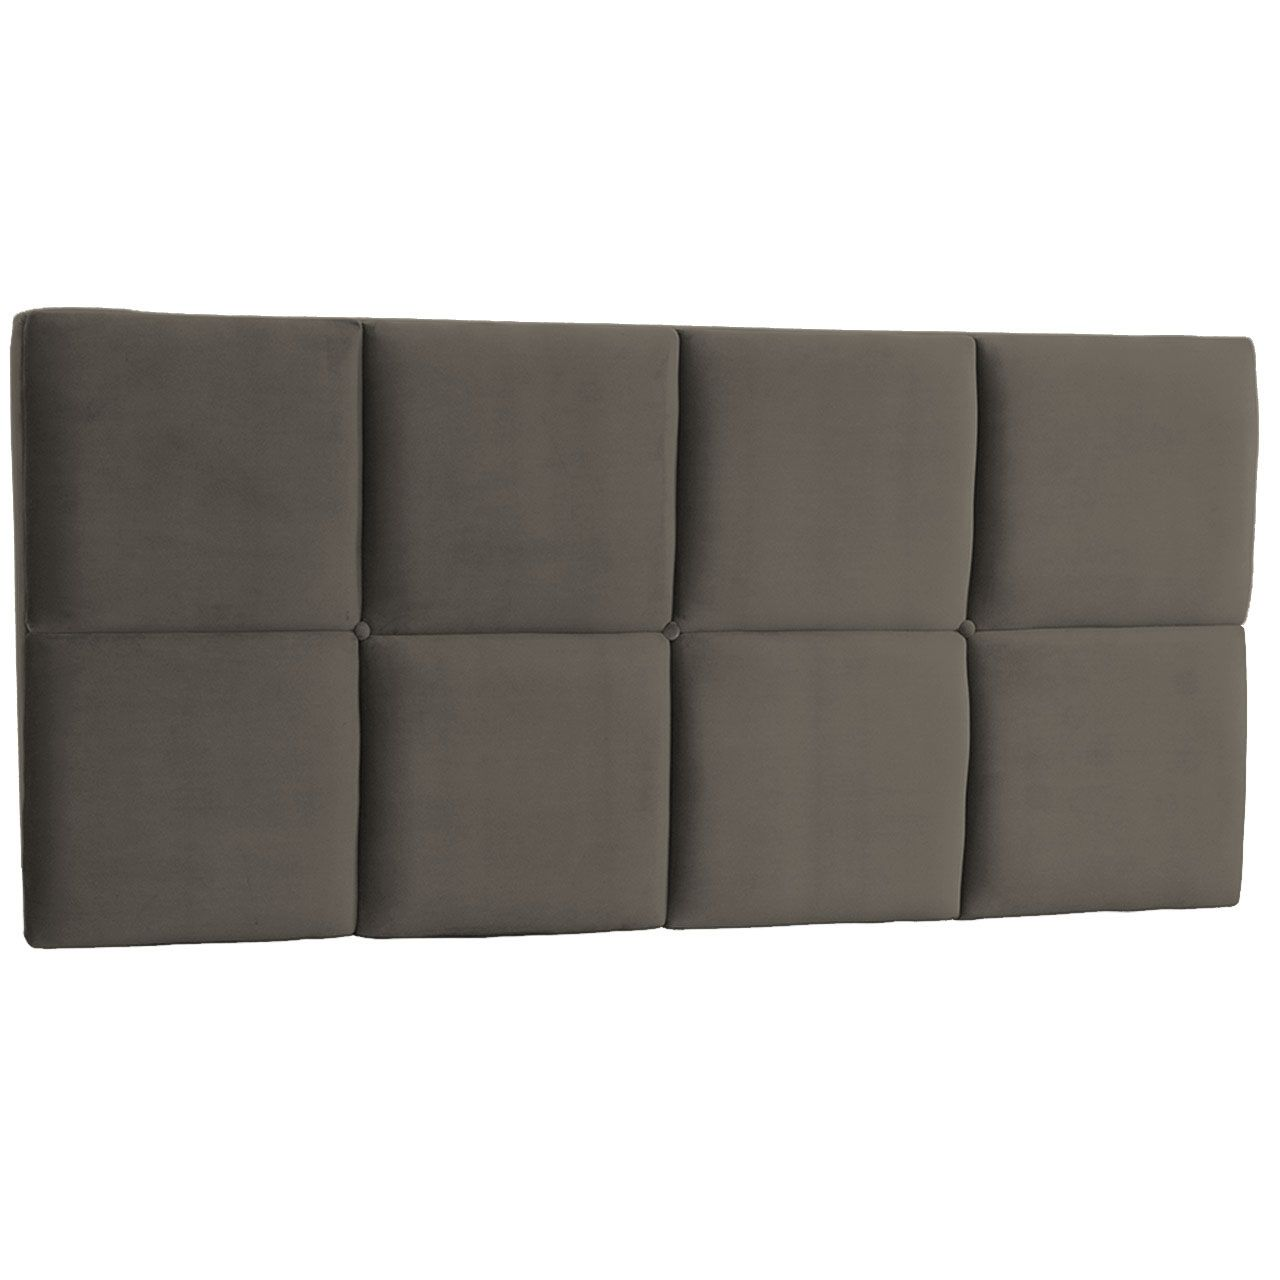 Cabeceira Painel Casal Poliana 140 cm Suede Cinza